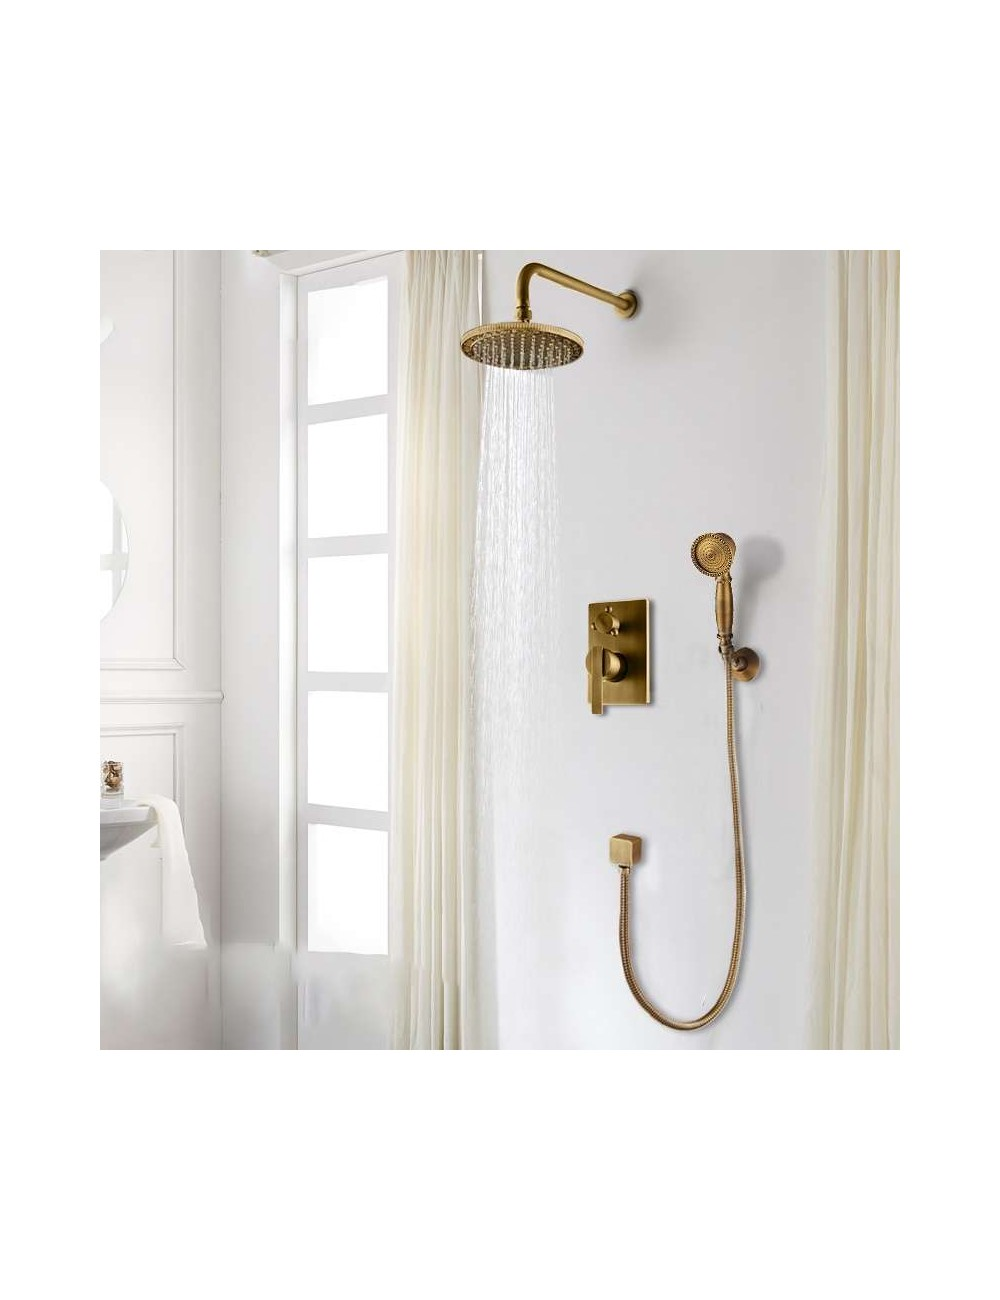 Colonne De Douche Thermostatique Encastrable.Cob Pack Douche Mural Encastrable Salledebains Shop Com